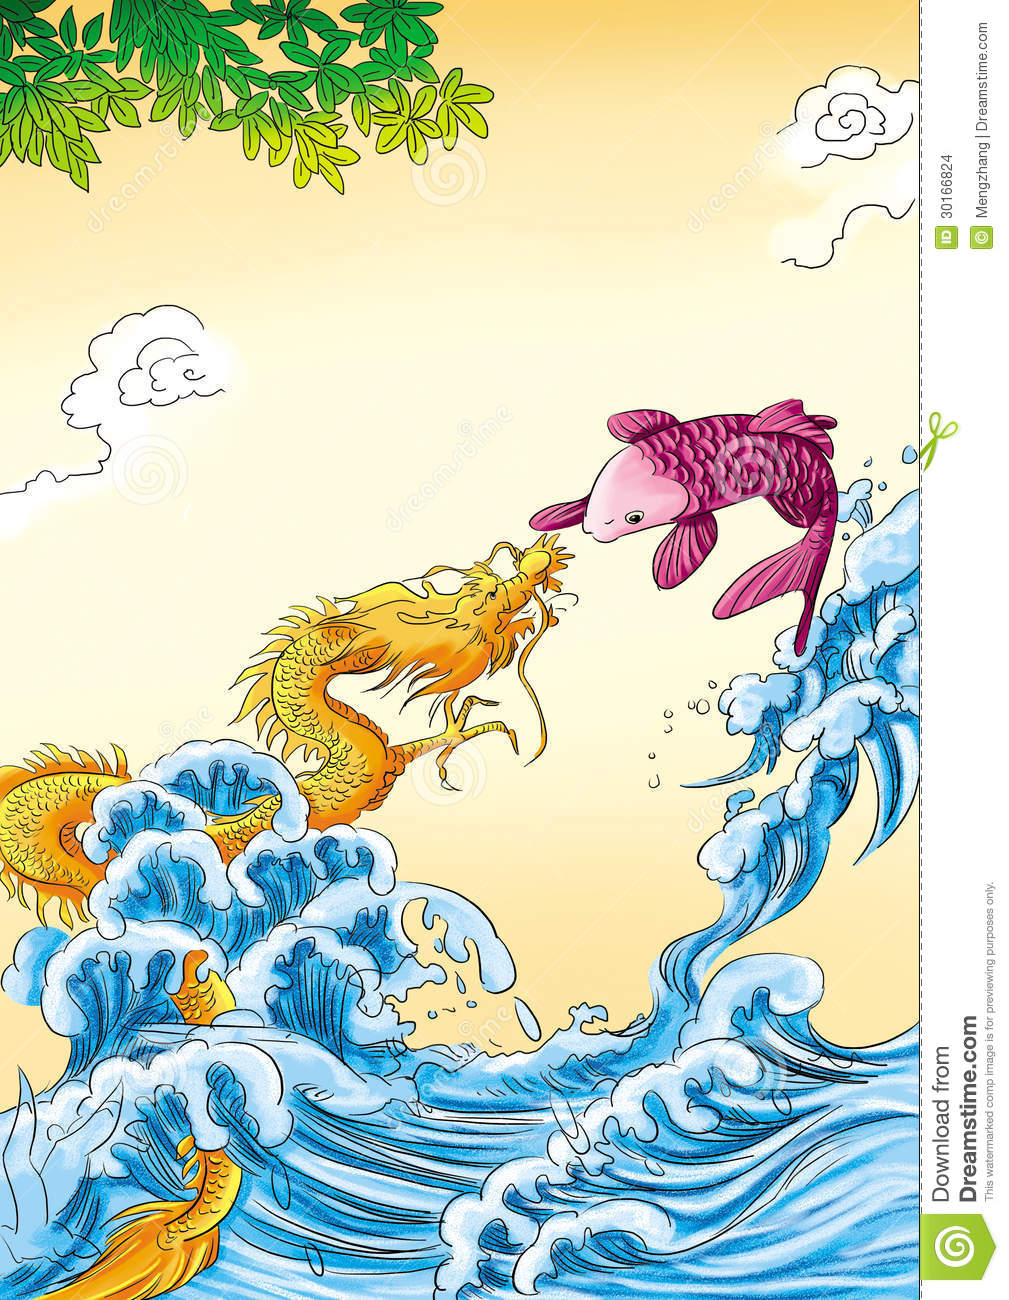 Fish in Chinese mythology